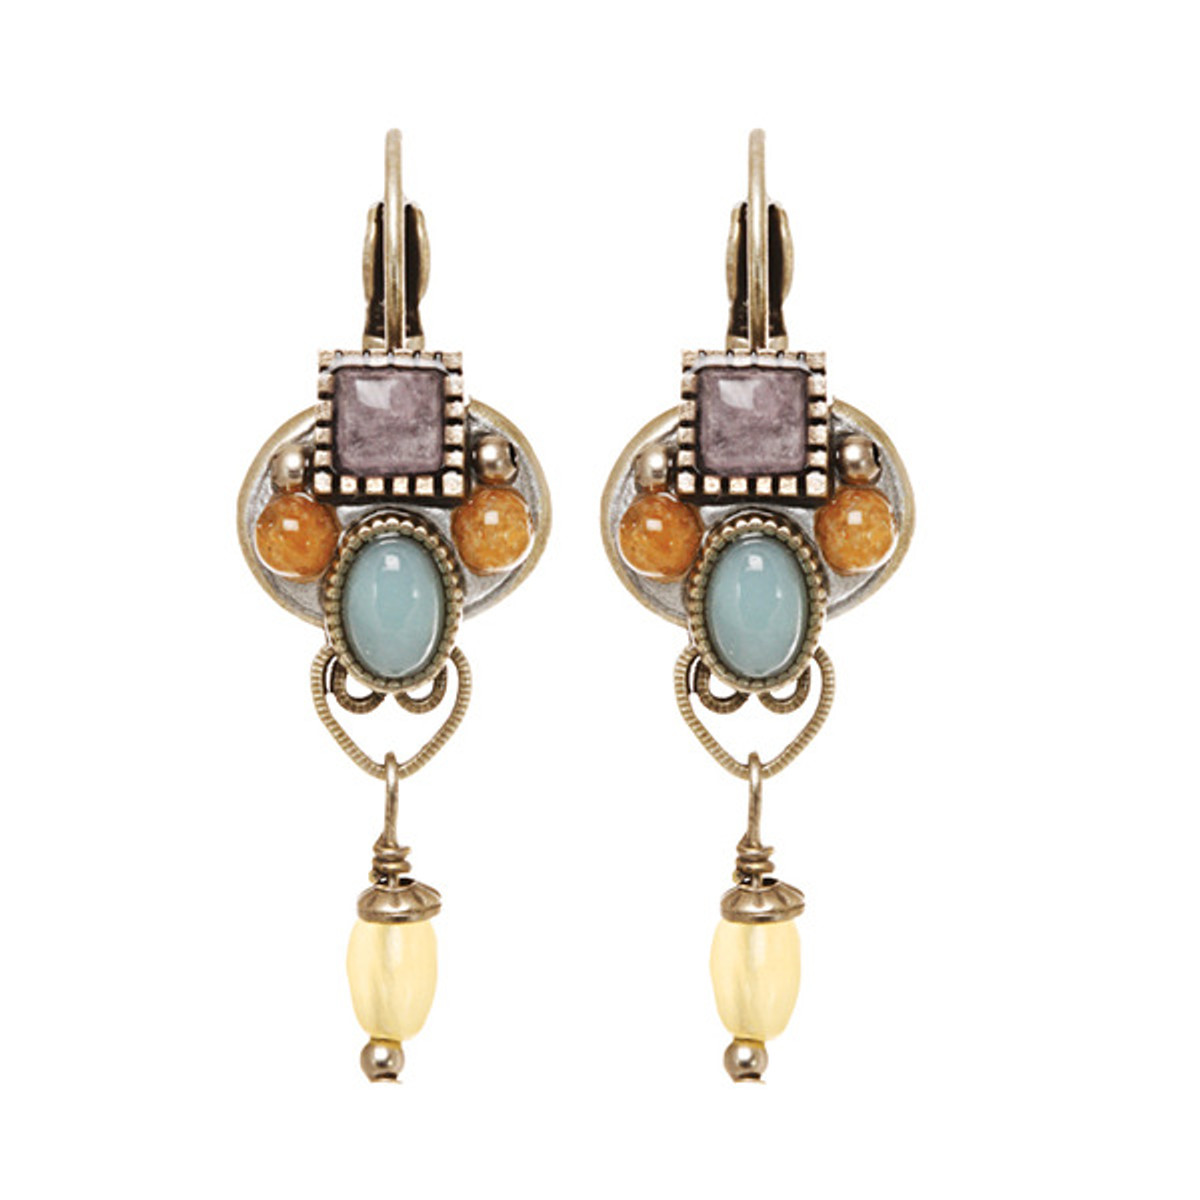 Lovely Tranquility Earrings From Michal Golan Jewelry